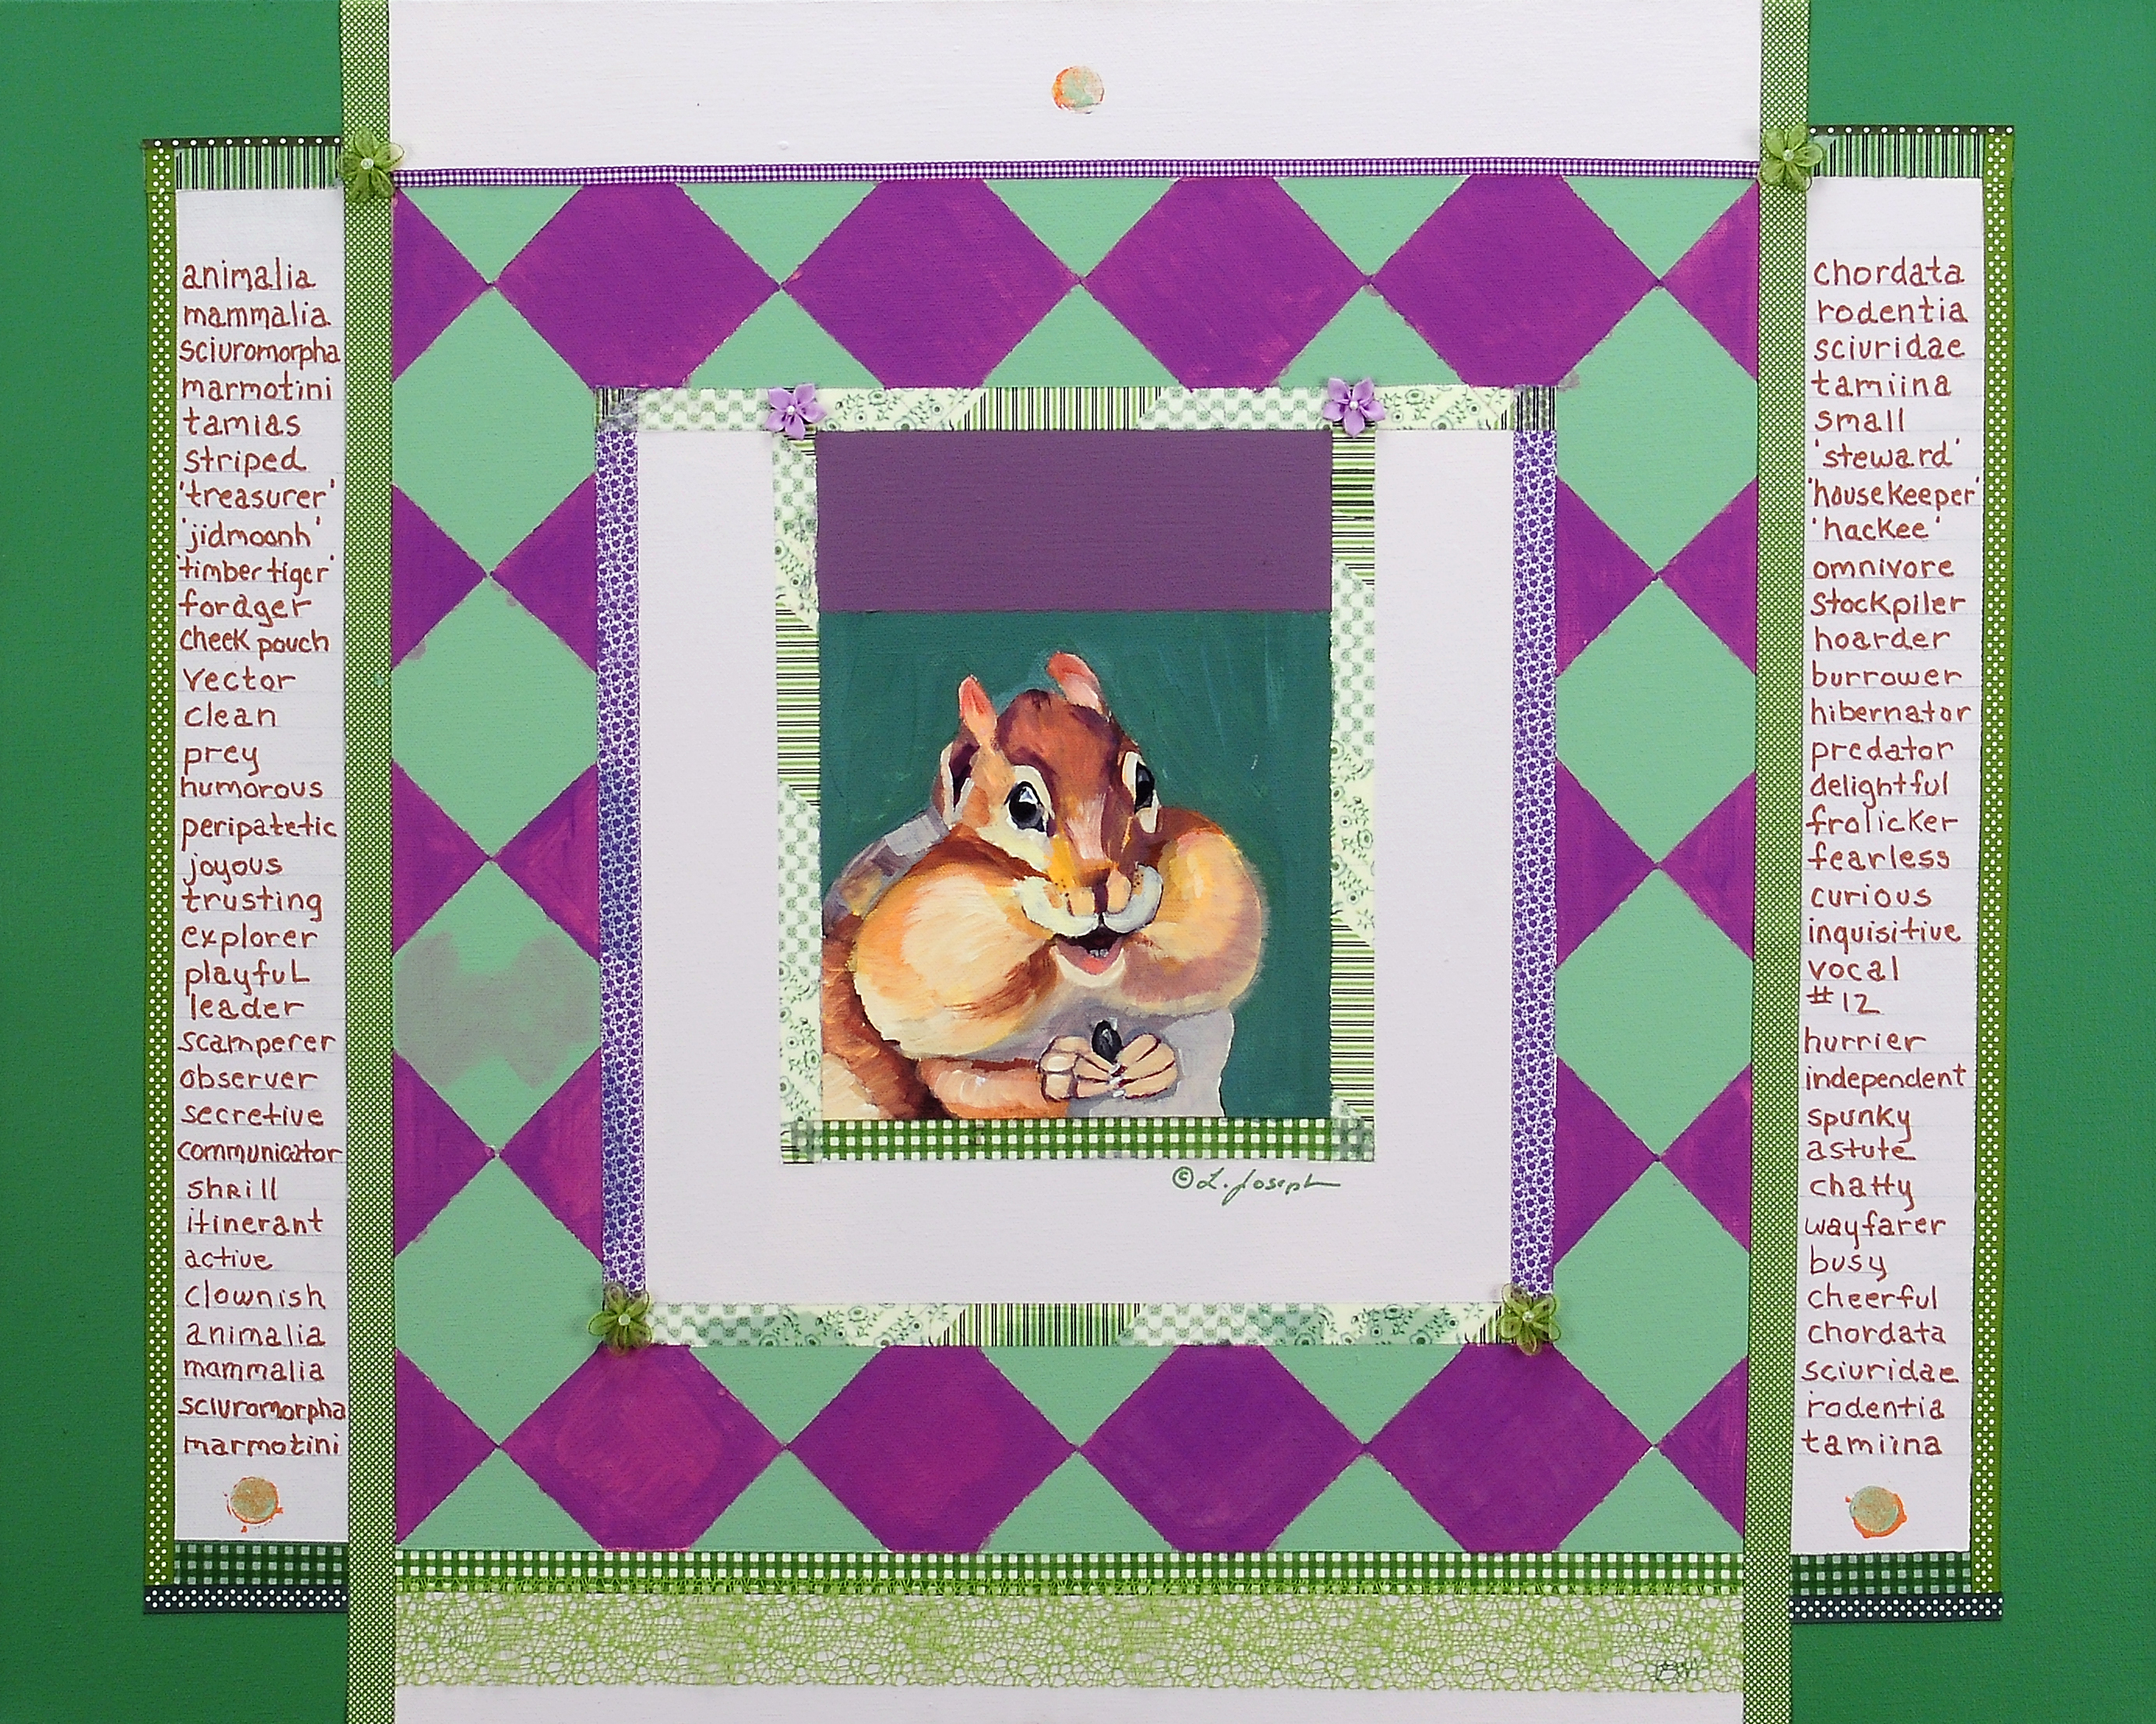 Chipmunk Speaks, mixed media on canvas 30x40""